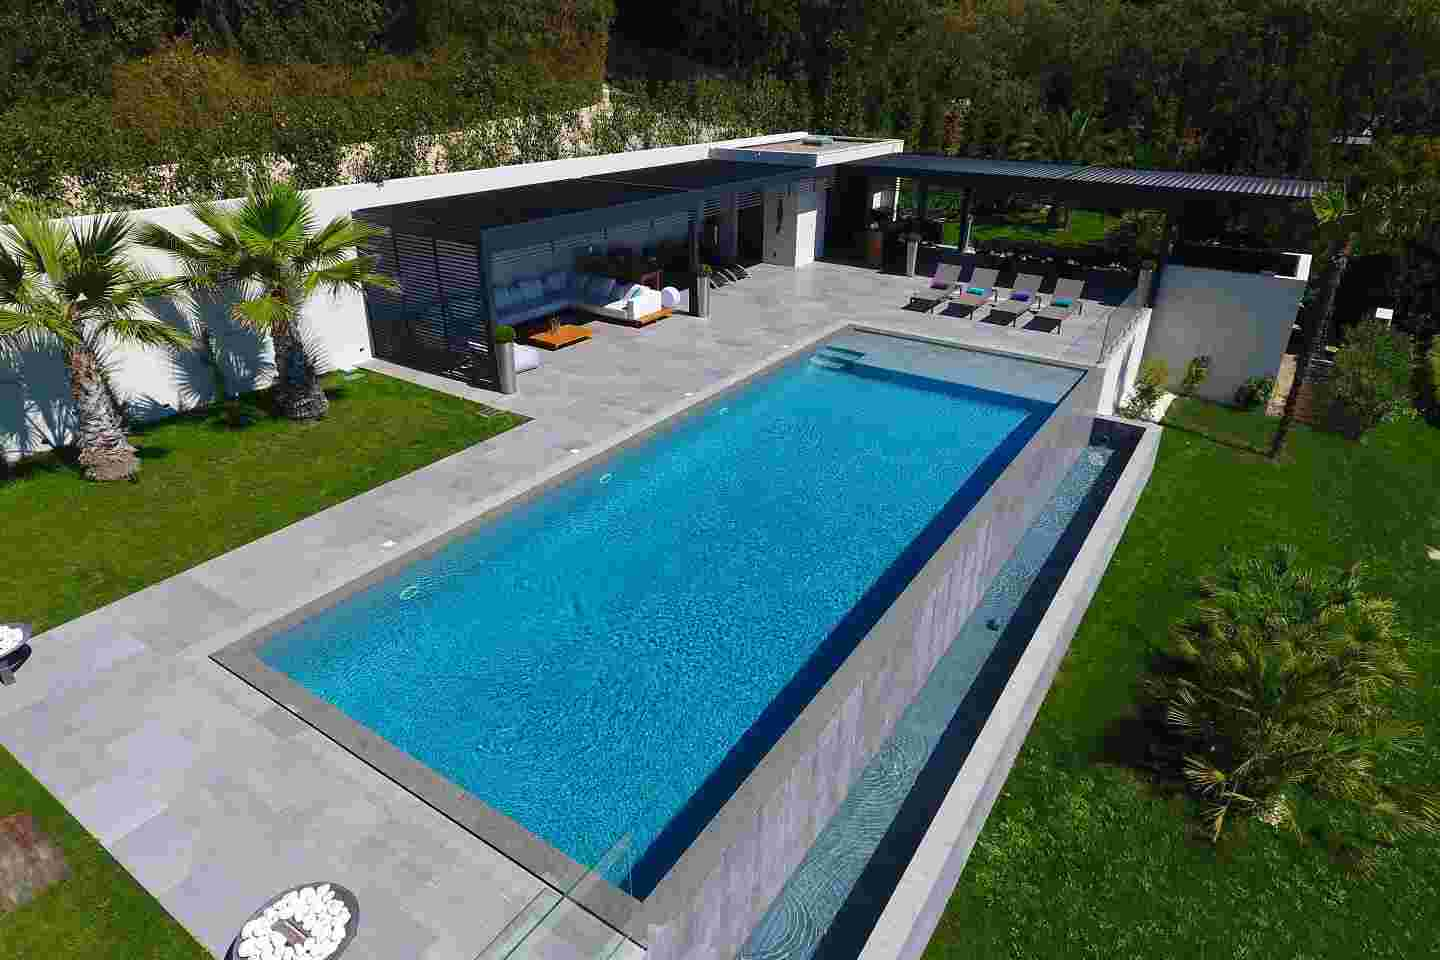 Piscine design et tendance piscines diffazur for Piscine moderne design